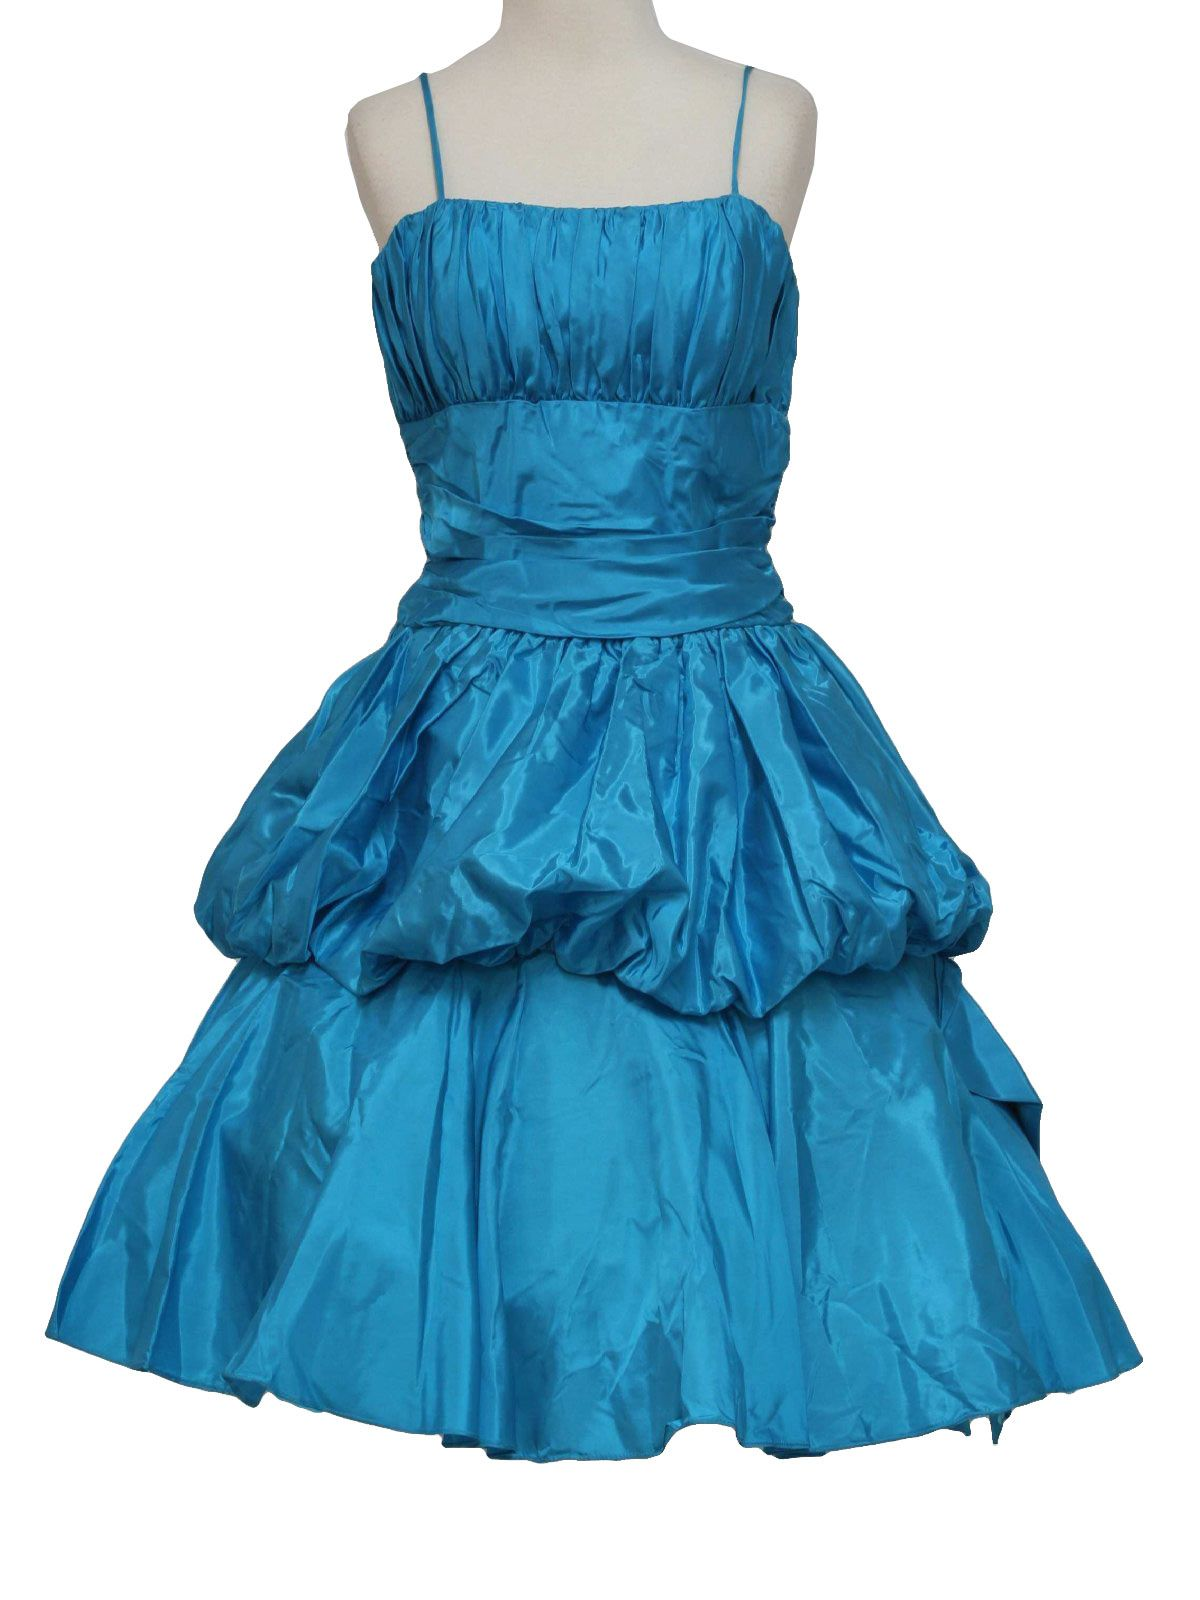 80\'s prom dress | 1980\'s/Early 90\'s Dresses/Fashion | Pinterest ...